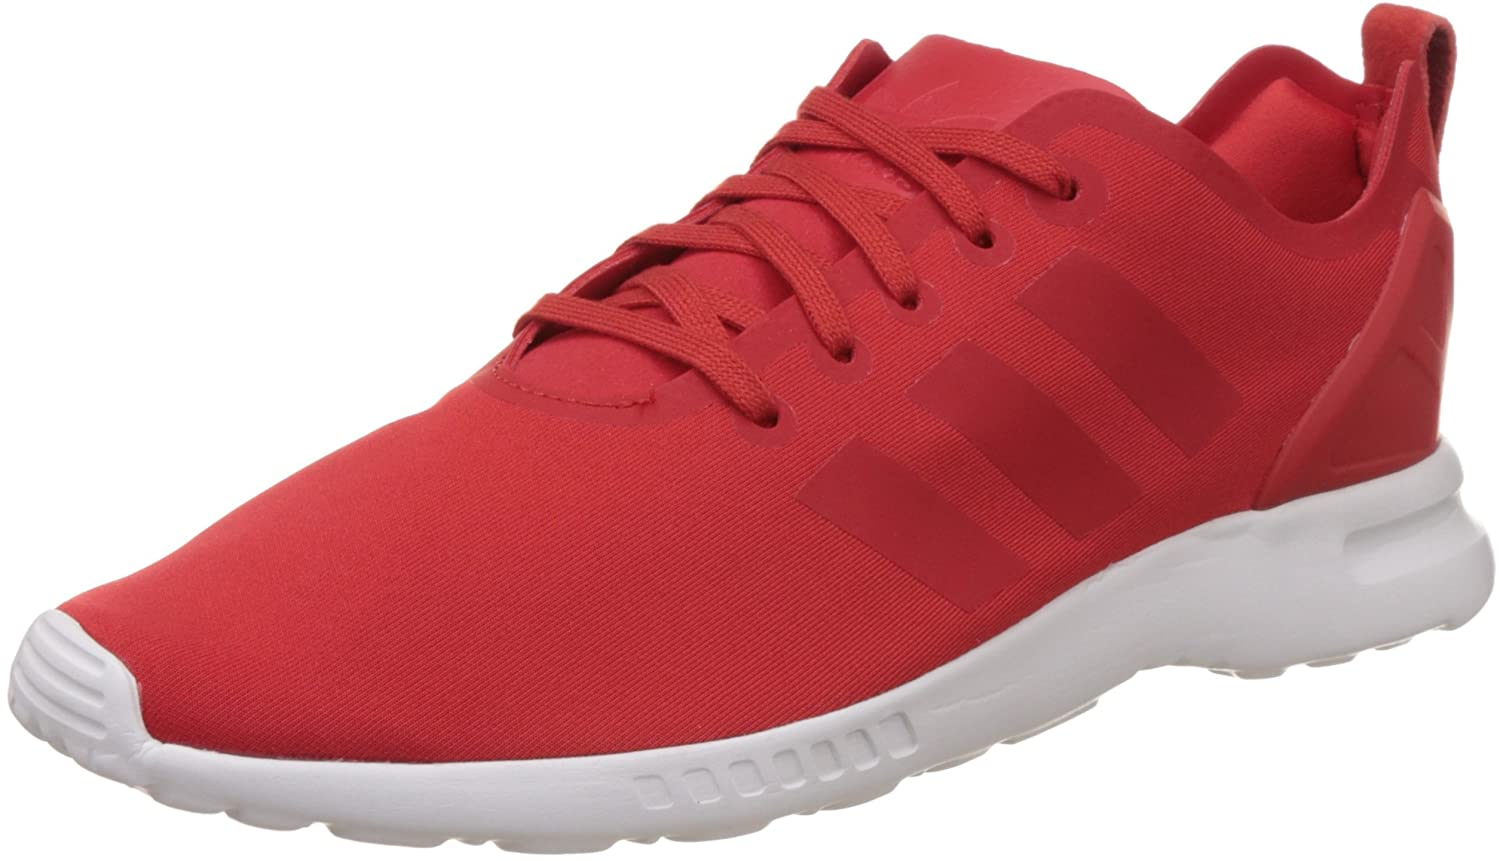 san francisco d8c38 63b28 adidas Zx Flux Smooth, Women's Low-Top Sneakers